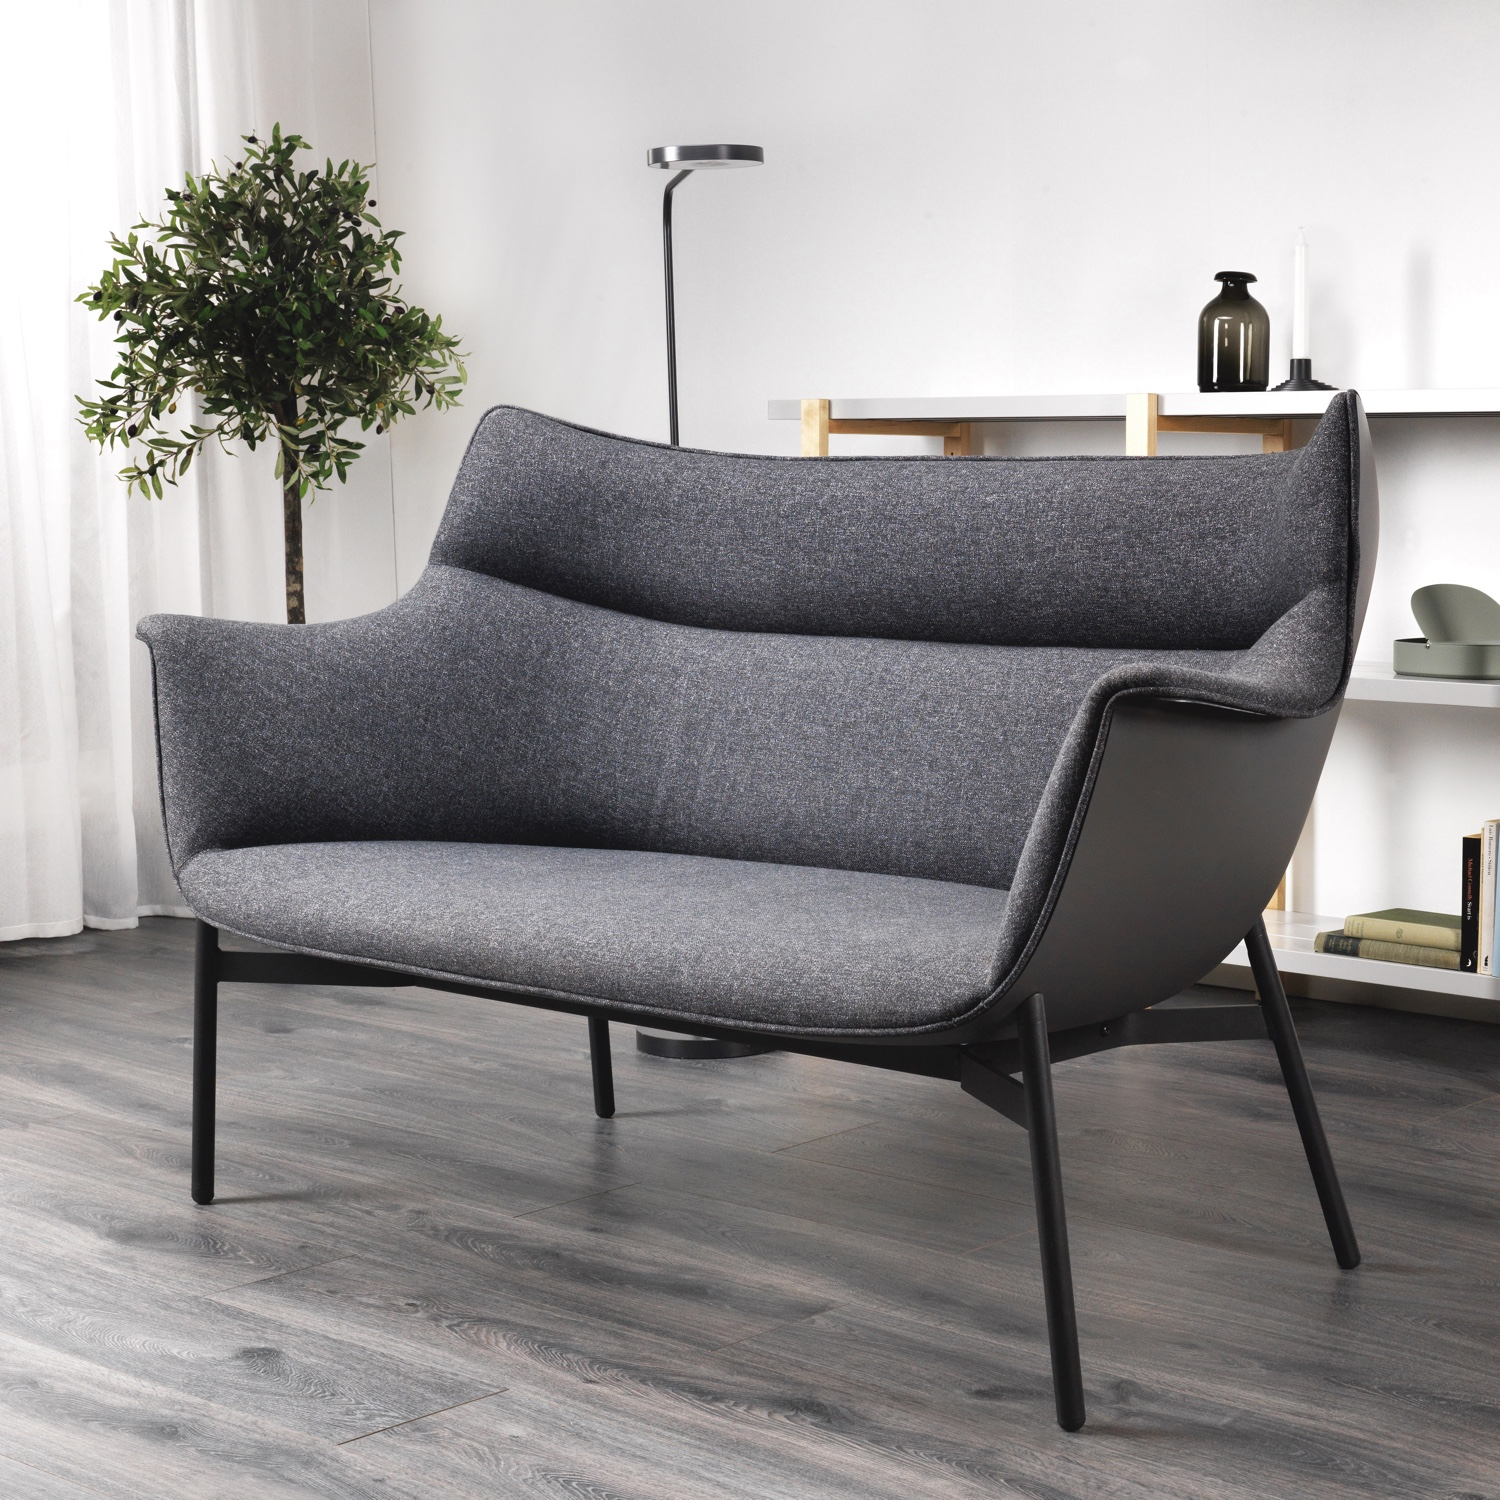 Sofa Ikea 10 Standouts From The Ikea X Hay Ypperlig Collection